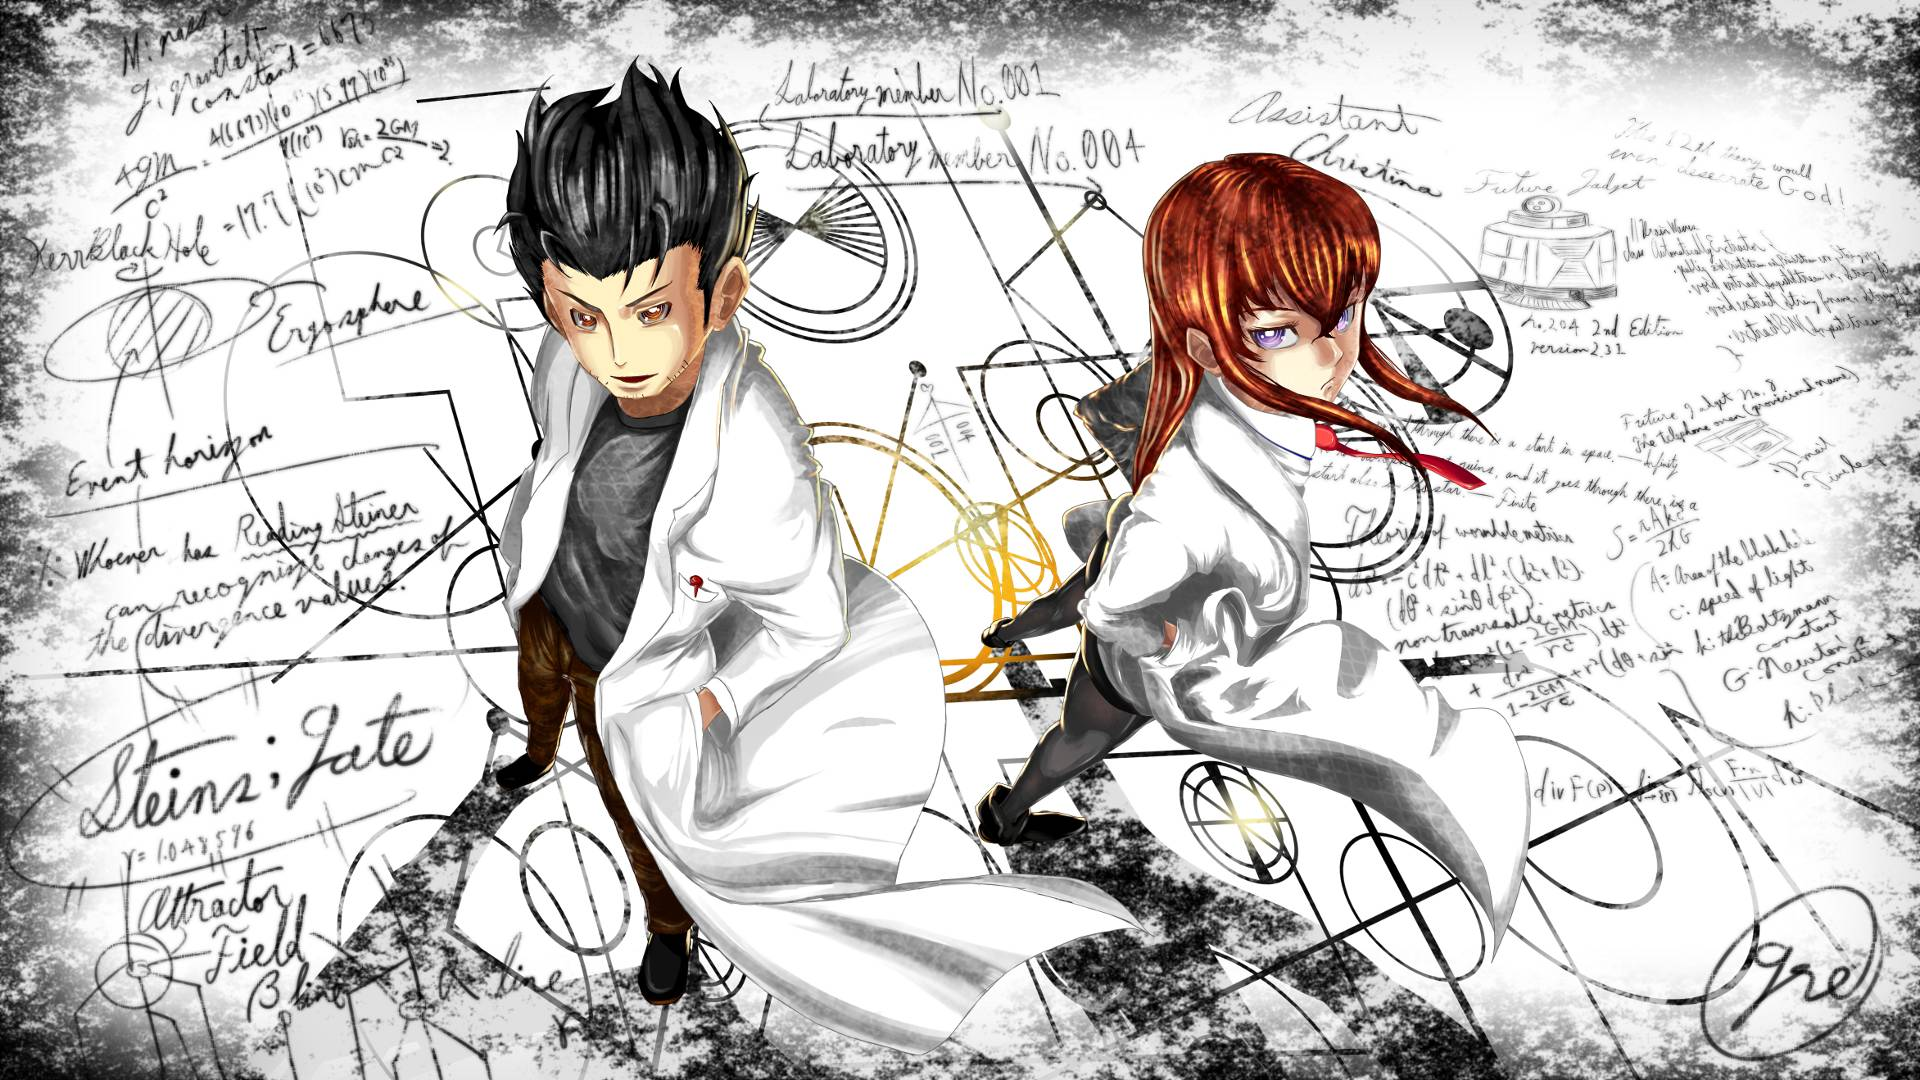 Steins;Gate Wallpapers - Wallpaper Cave